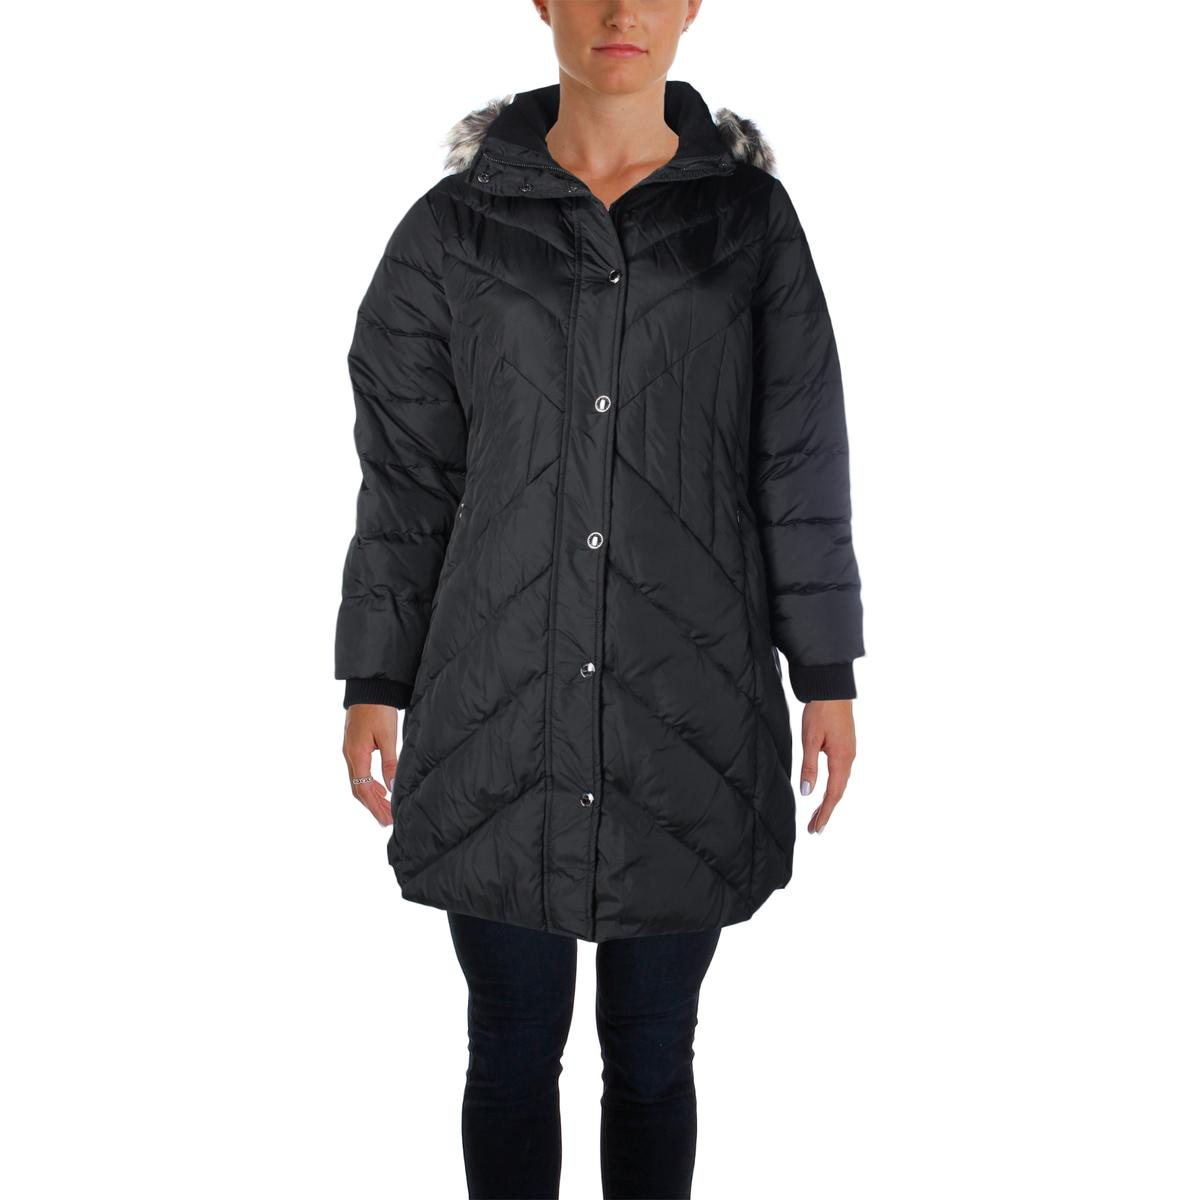 Hooded womens coats